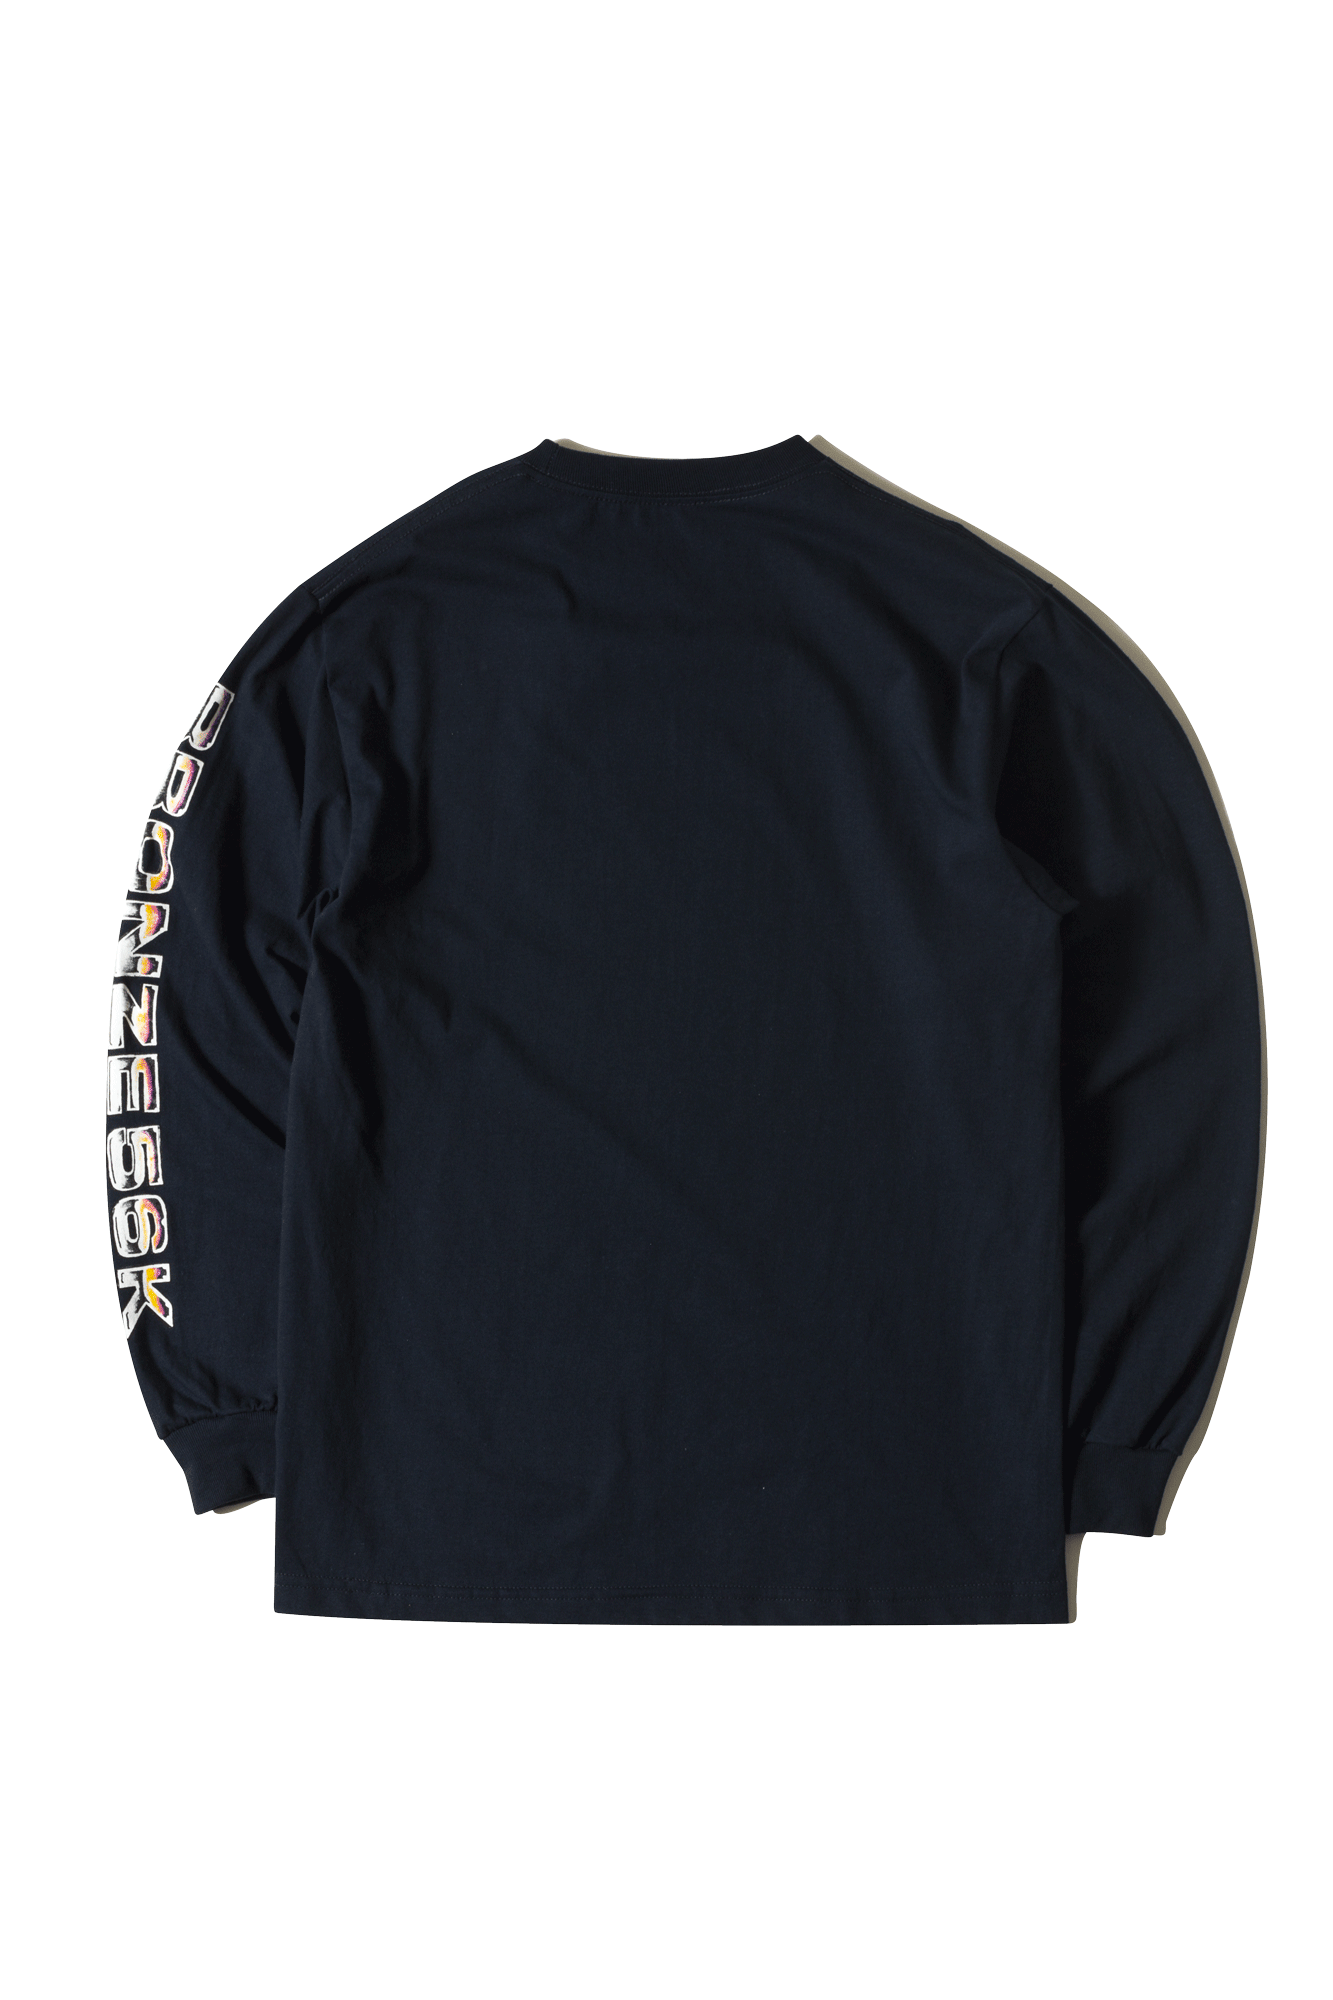 Bronze 56K Long sleeve T-Shirts LS T-shirt Shoulder lean Blue SHOULDERLE#000#NAVY#XXS - One Block Down